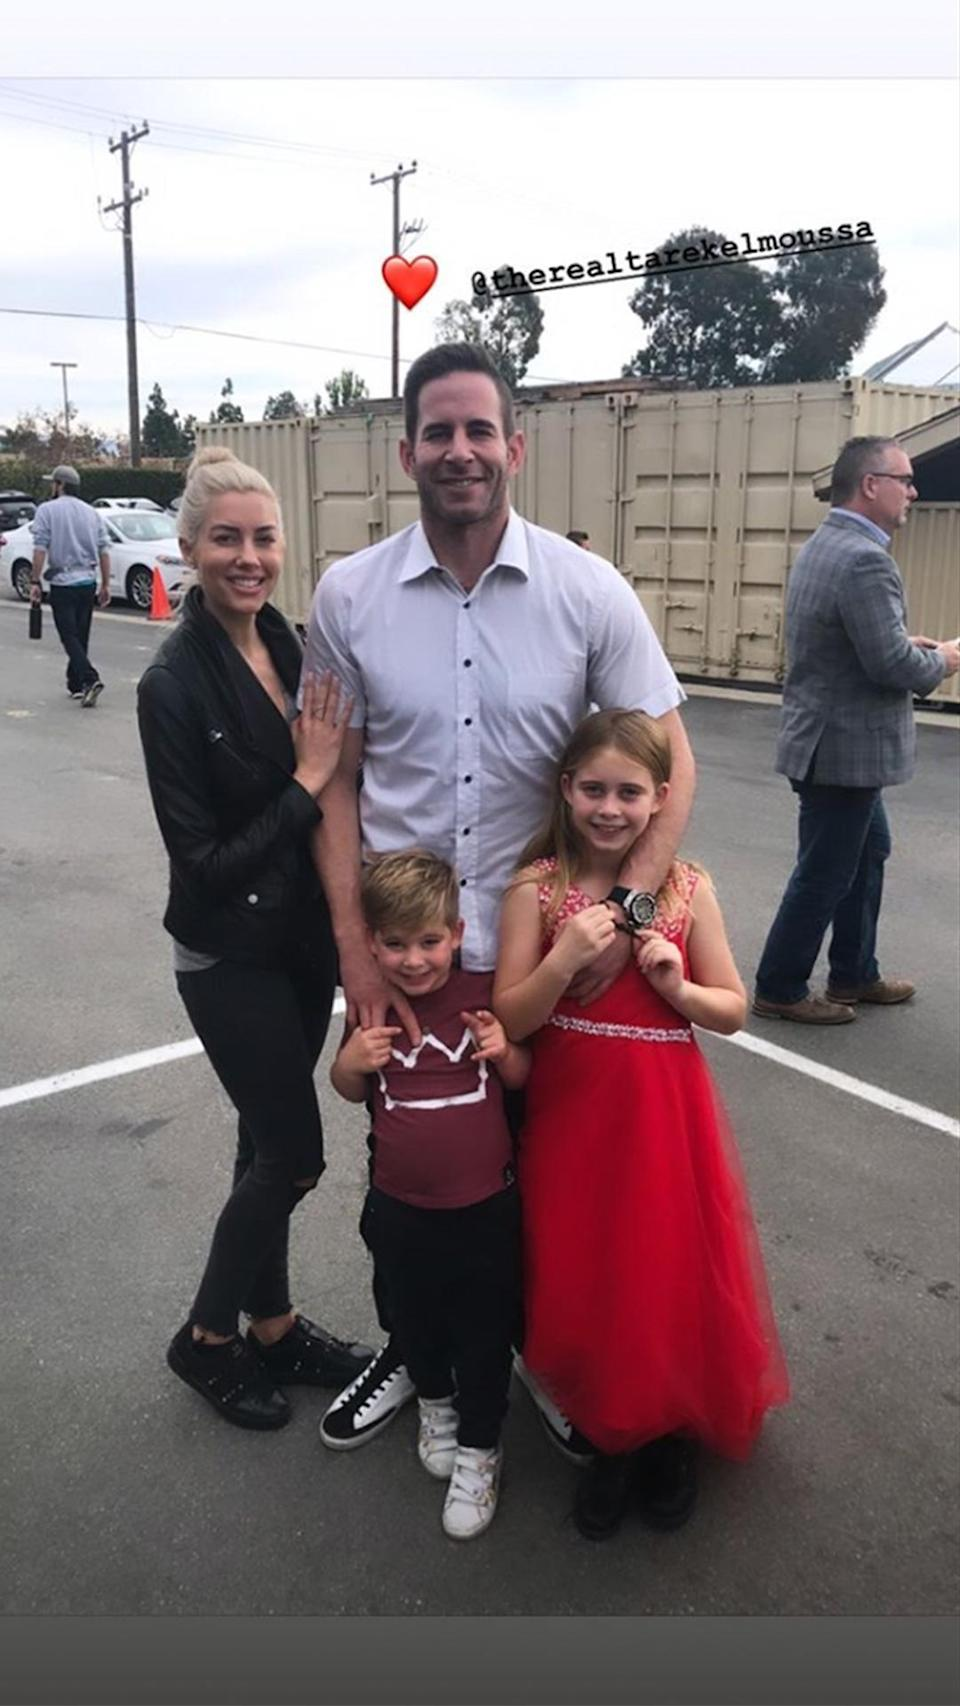 """<p>Speaking to <i>Us</i> in January 2021, the dad-of-two added that <a href=""""https://www.usmagazine.com/celebrity-moms/news/tarek-el-moussa-christina-anstead-are-coparenting-better/"""" rel=""""nofollow noopener"""" target=""""_blank"""" data-ylk=""""slk:Christina gets along with his fiancée,"""" class=""""link rapid-noclick-resp"""">Christina gets along with his fiancée,</a> <i>Selling Sunset</i> realtor Heather Rae Young (pictured), whom he proposed to in July 2020 after one year of dating. The two women """"coparent too,"""" El Moussa said. """"It's strictly business, but yeah. Everybody gets along.""""</p> <p>Young and Haack even exchanged well wishes and flowers for Mother's Day. Young often calls herself Taylor and Brayden's """"bonus mom.""""</p>"""